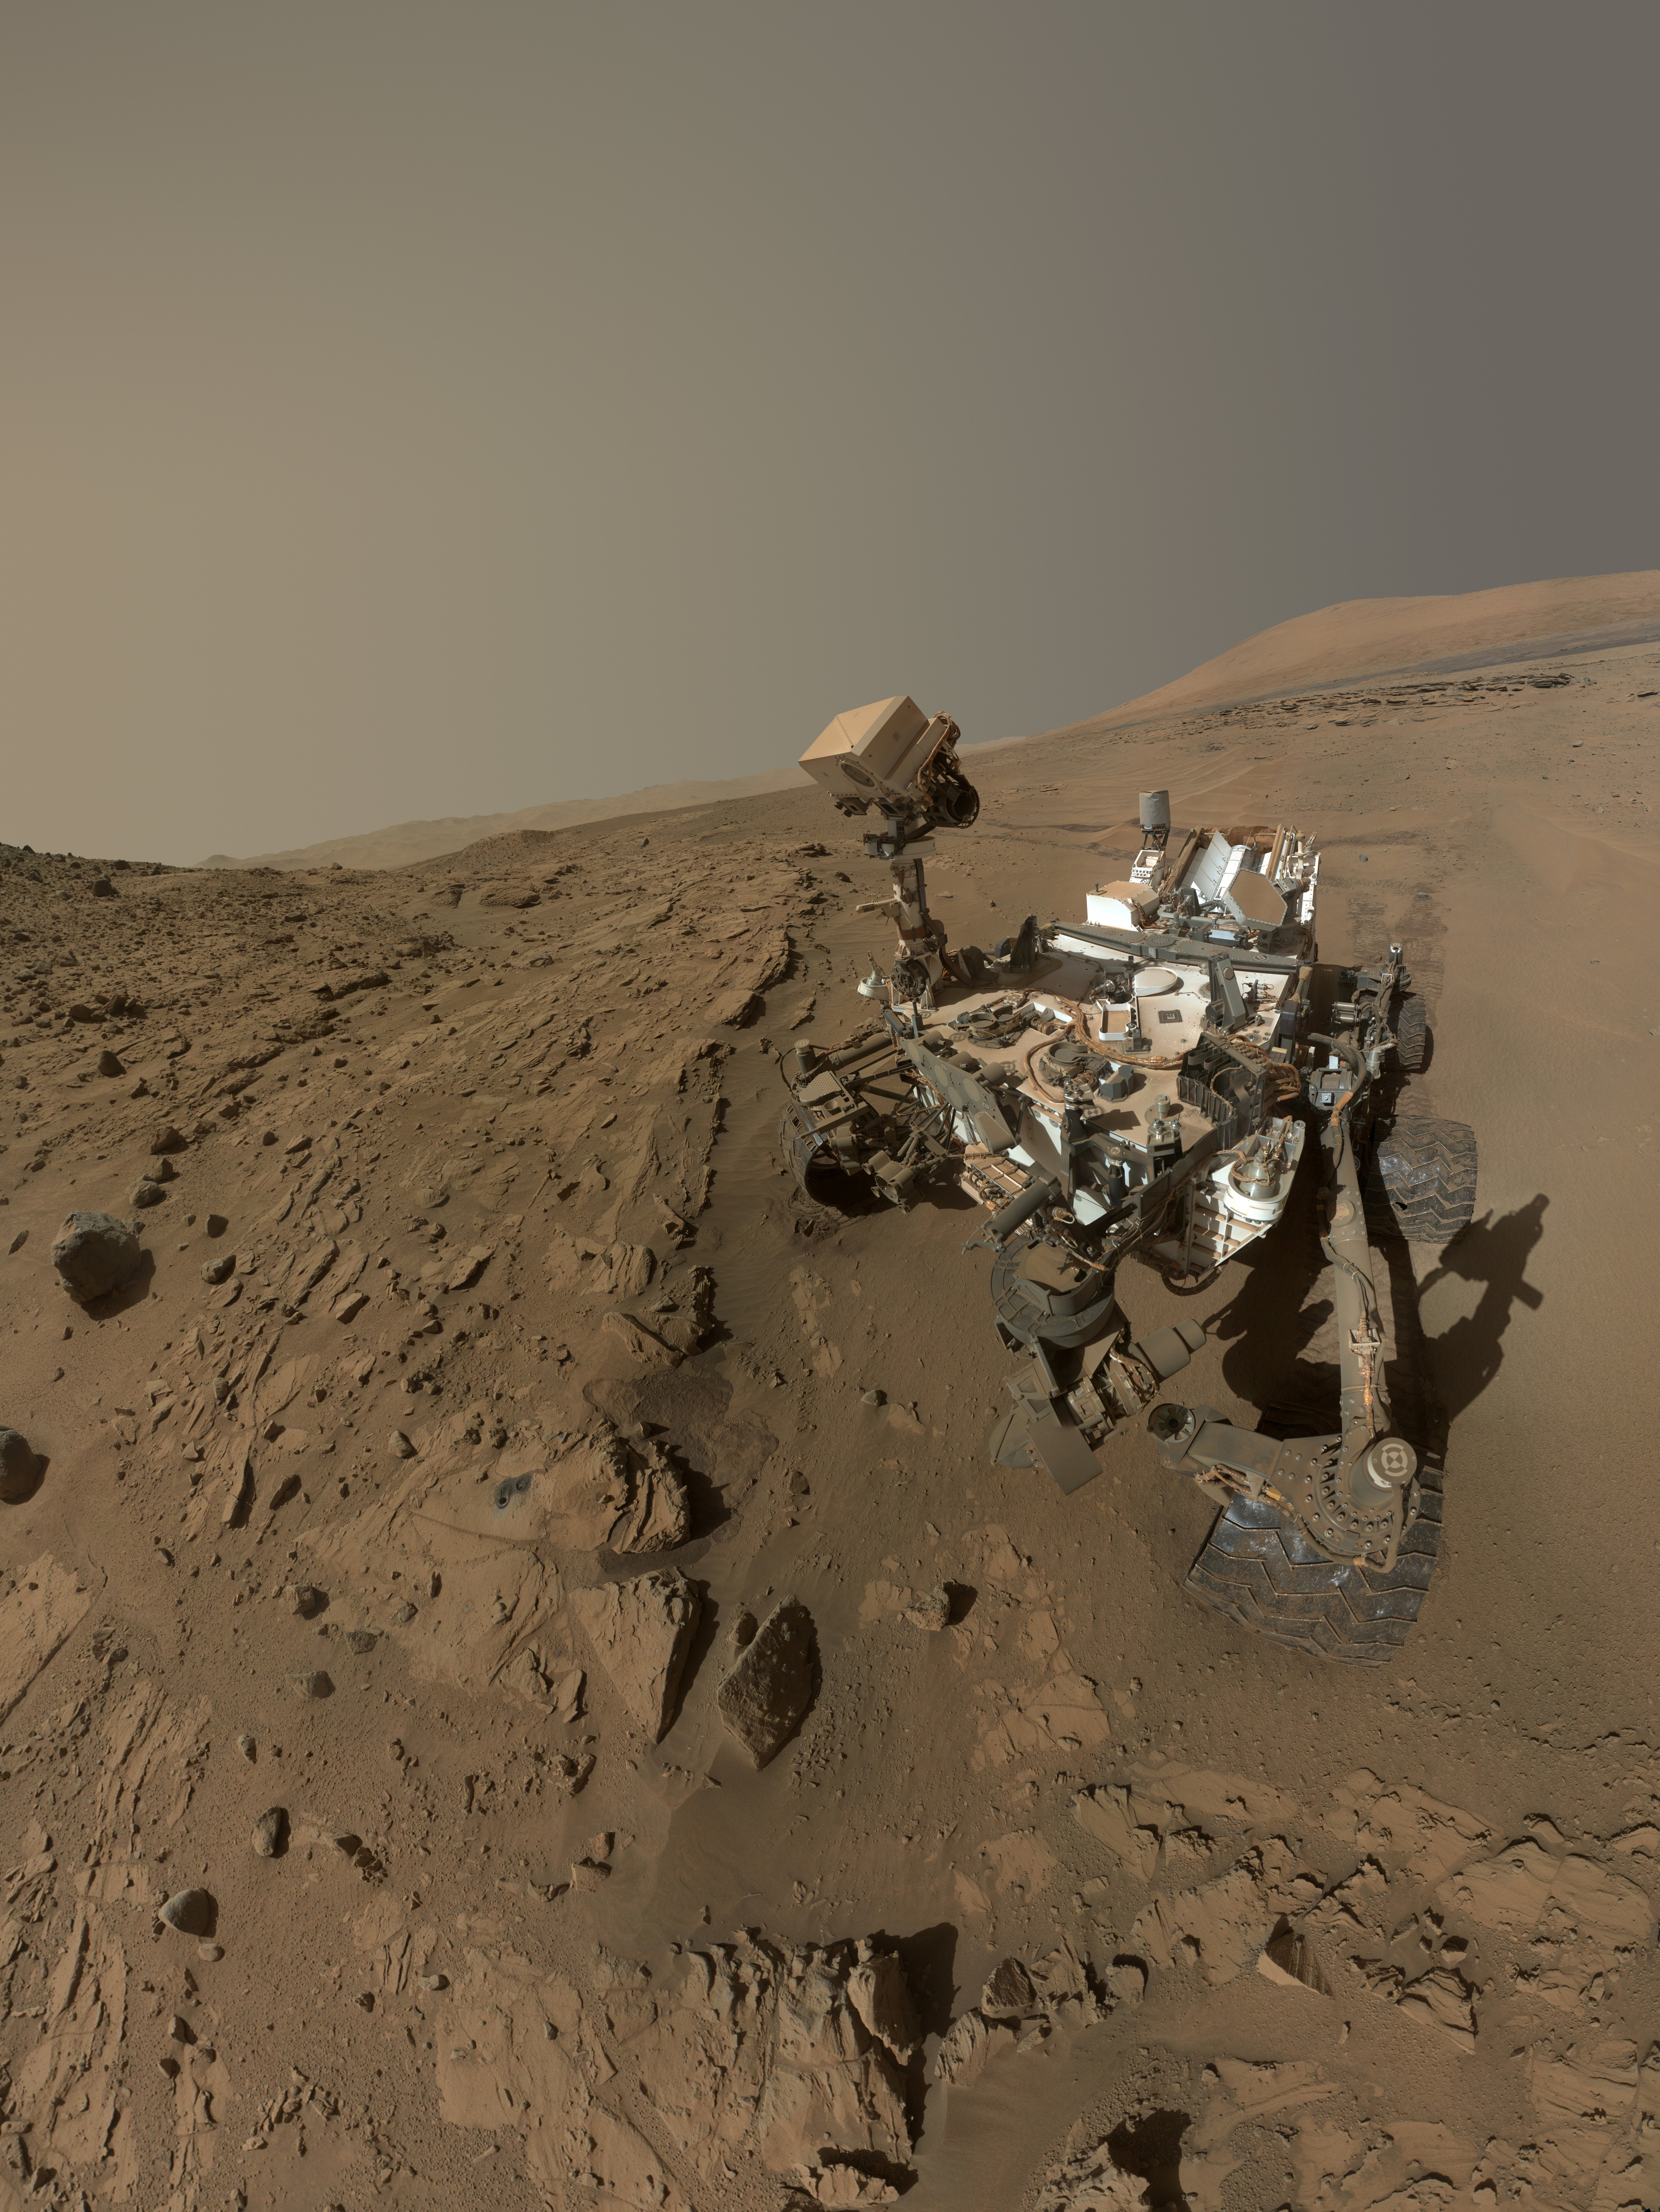 Water alone couldn't have made Mars hospitable to life